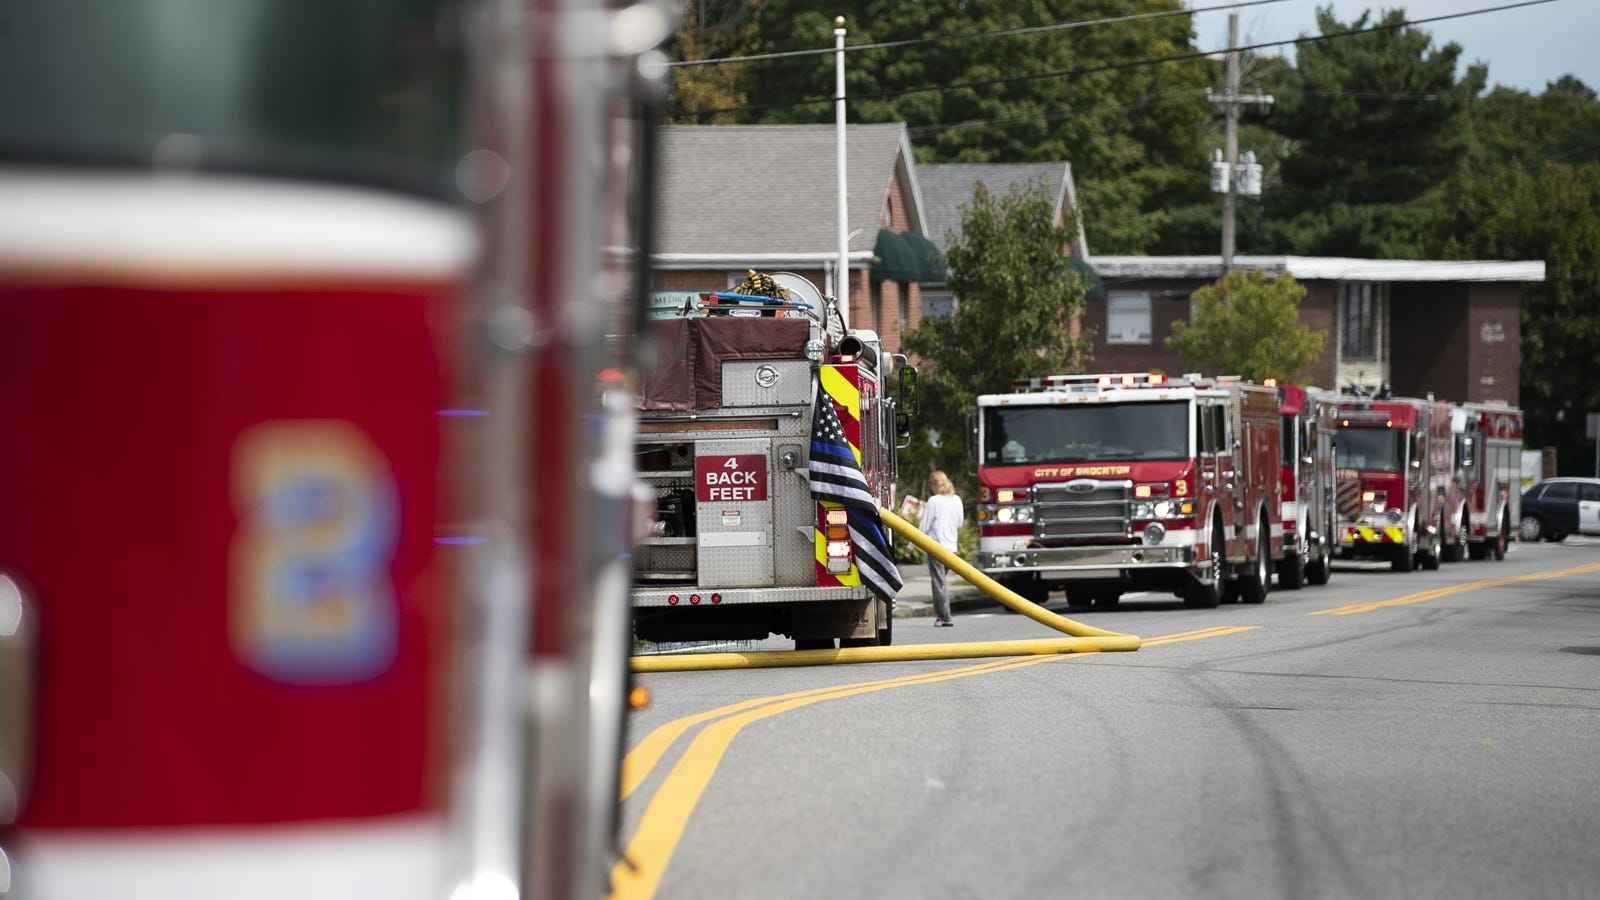 A firefighter claimed he had COVID-19 and took weeks off. But he allegedly went to a resort. 1